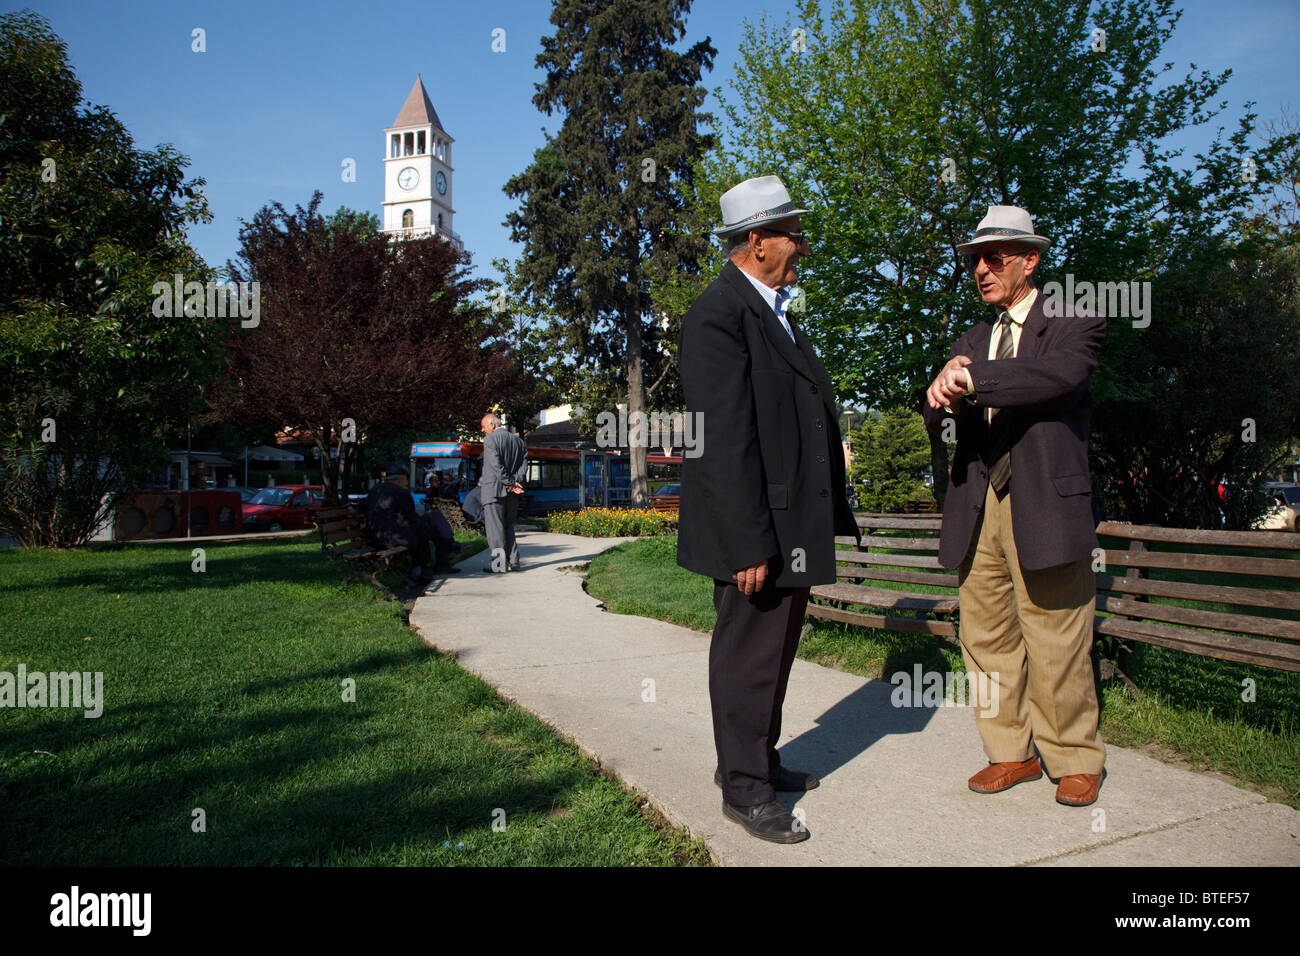 Two elegant old men in a park in the city centre of Tirana, the capital of Albania. - Stock Image